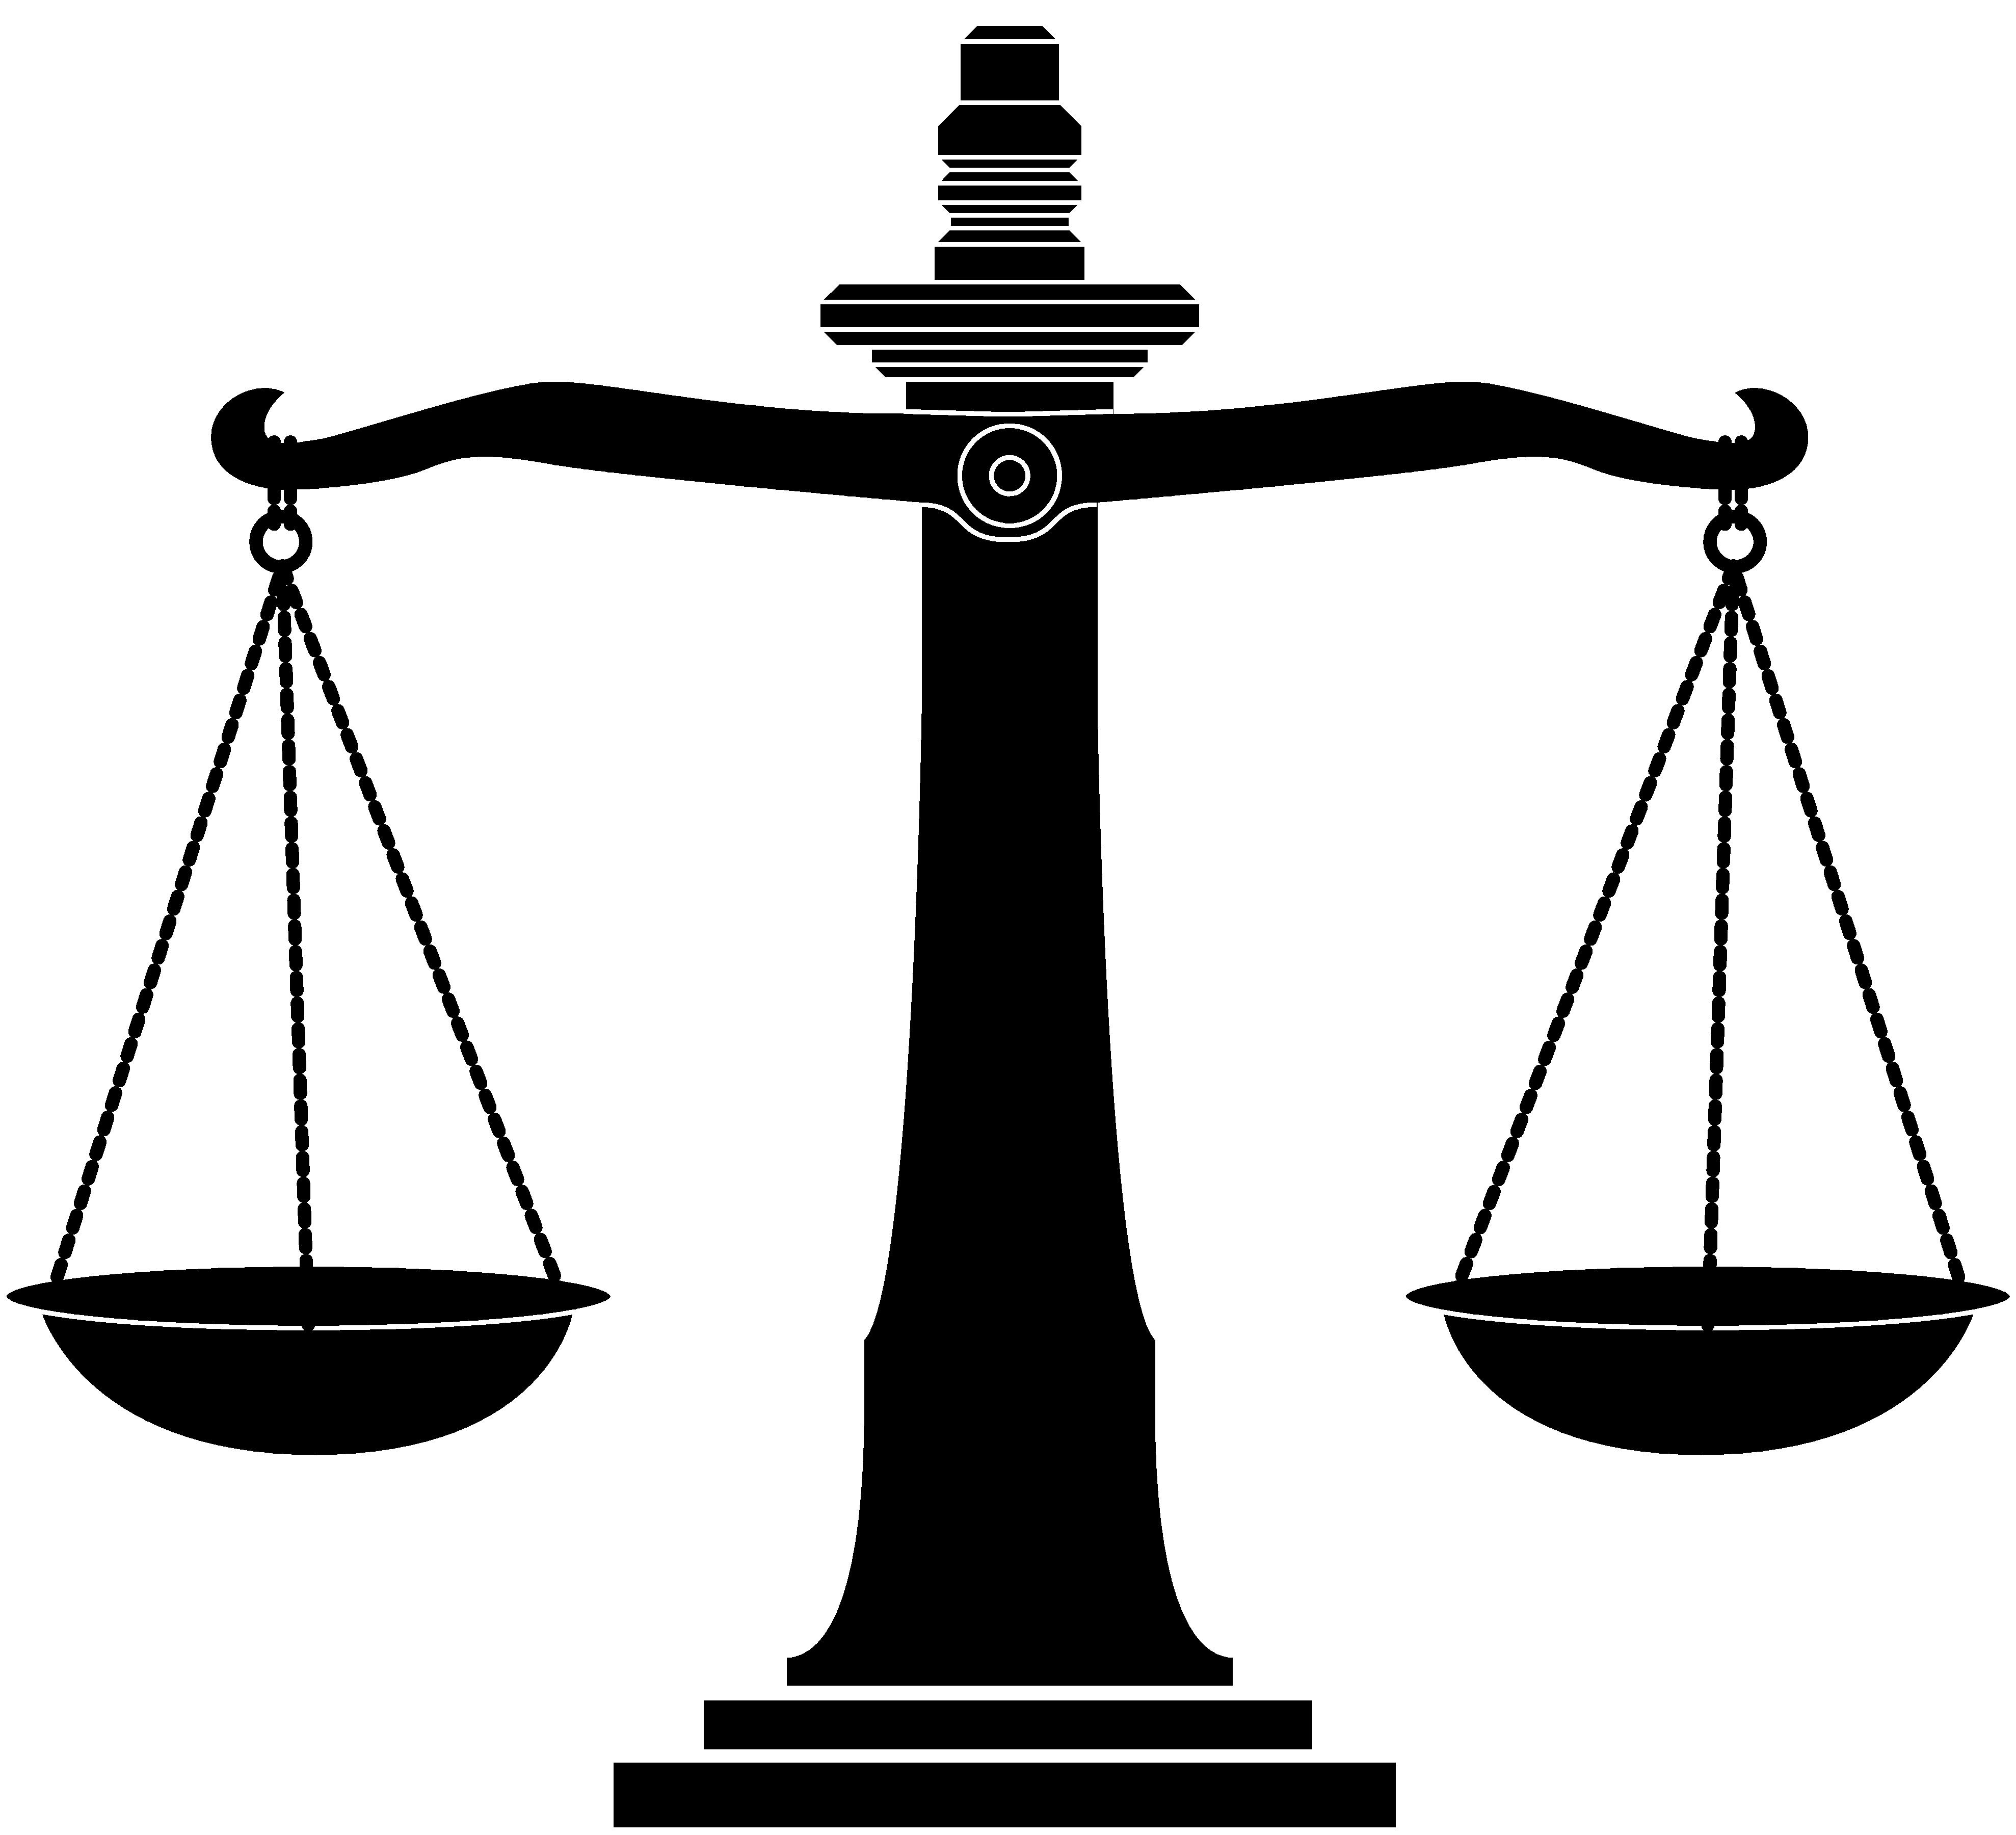 Lawyer scales of justice clipart png transparent download Free Scales Of Justice Clipart, Download Free Clip Art, Free ... png transparent download